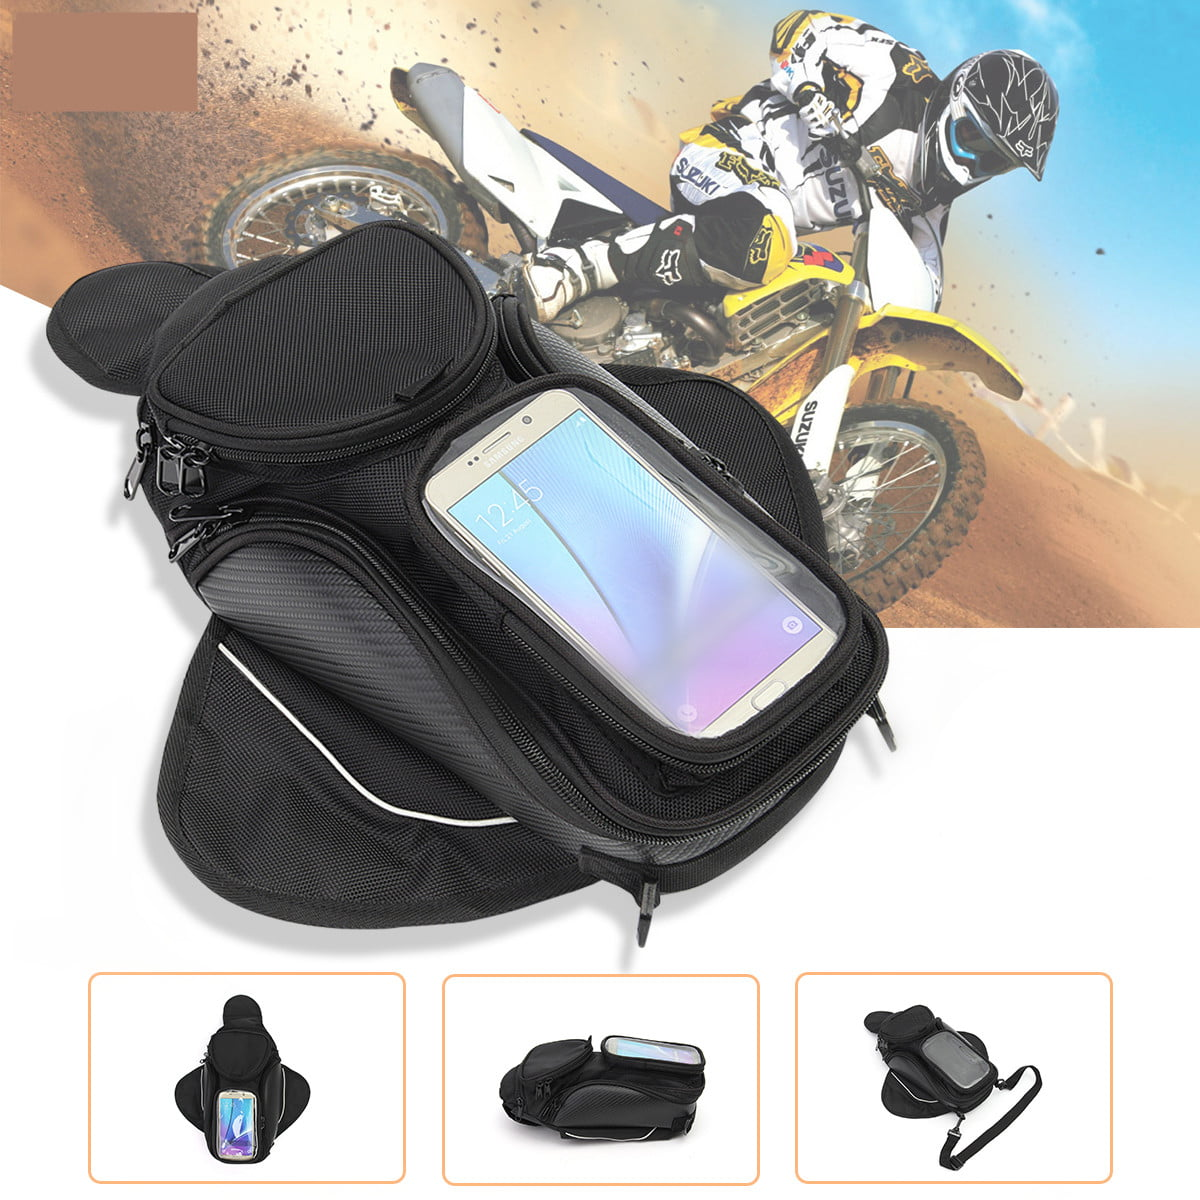 Waterproof Portable Black  Motorbike Bike Travel Fuel Tank Storage Bag Universal